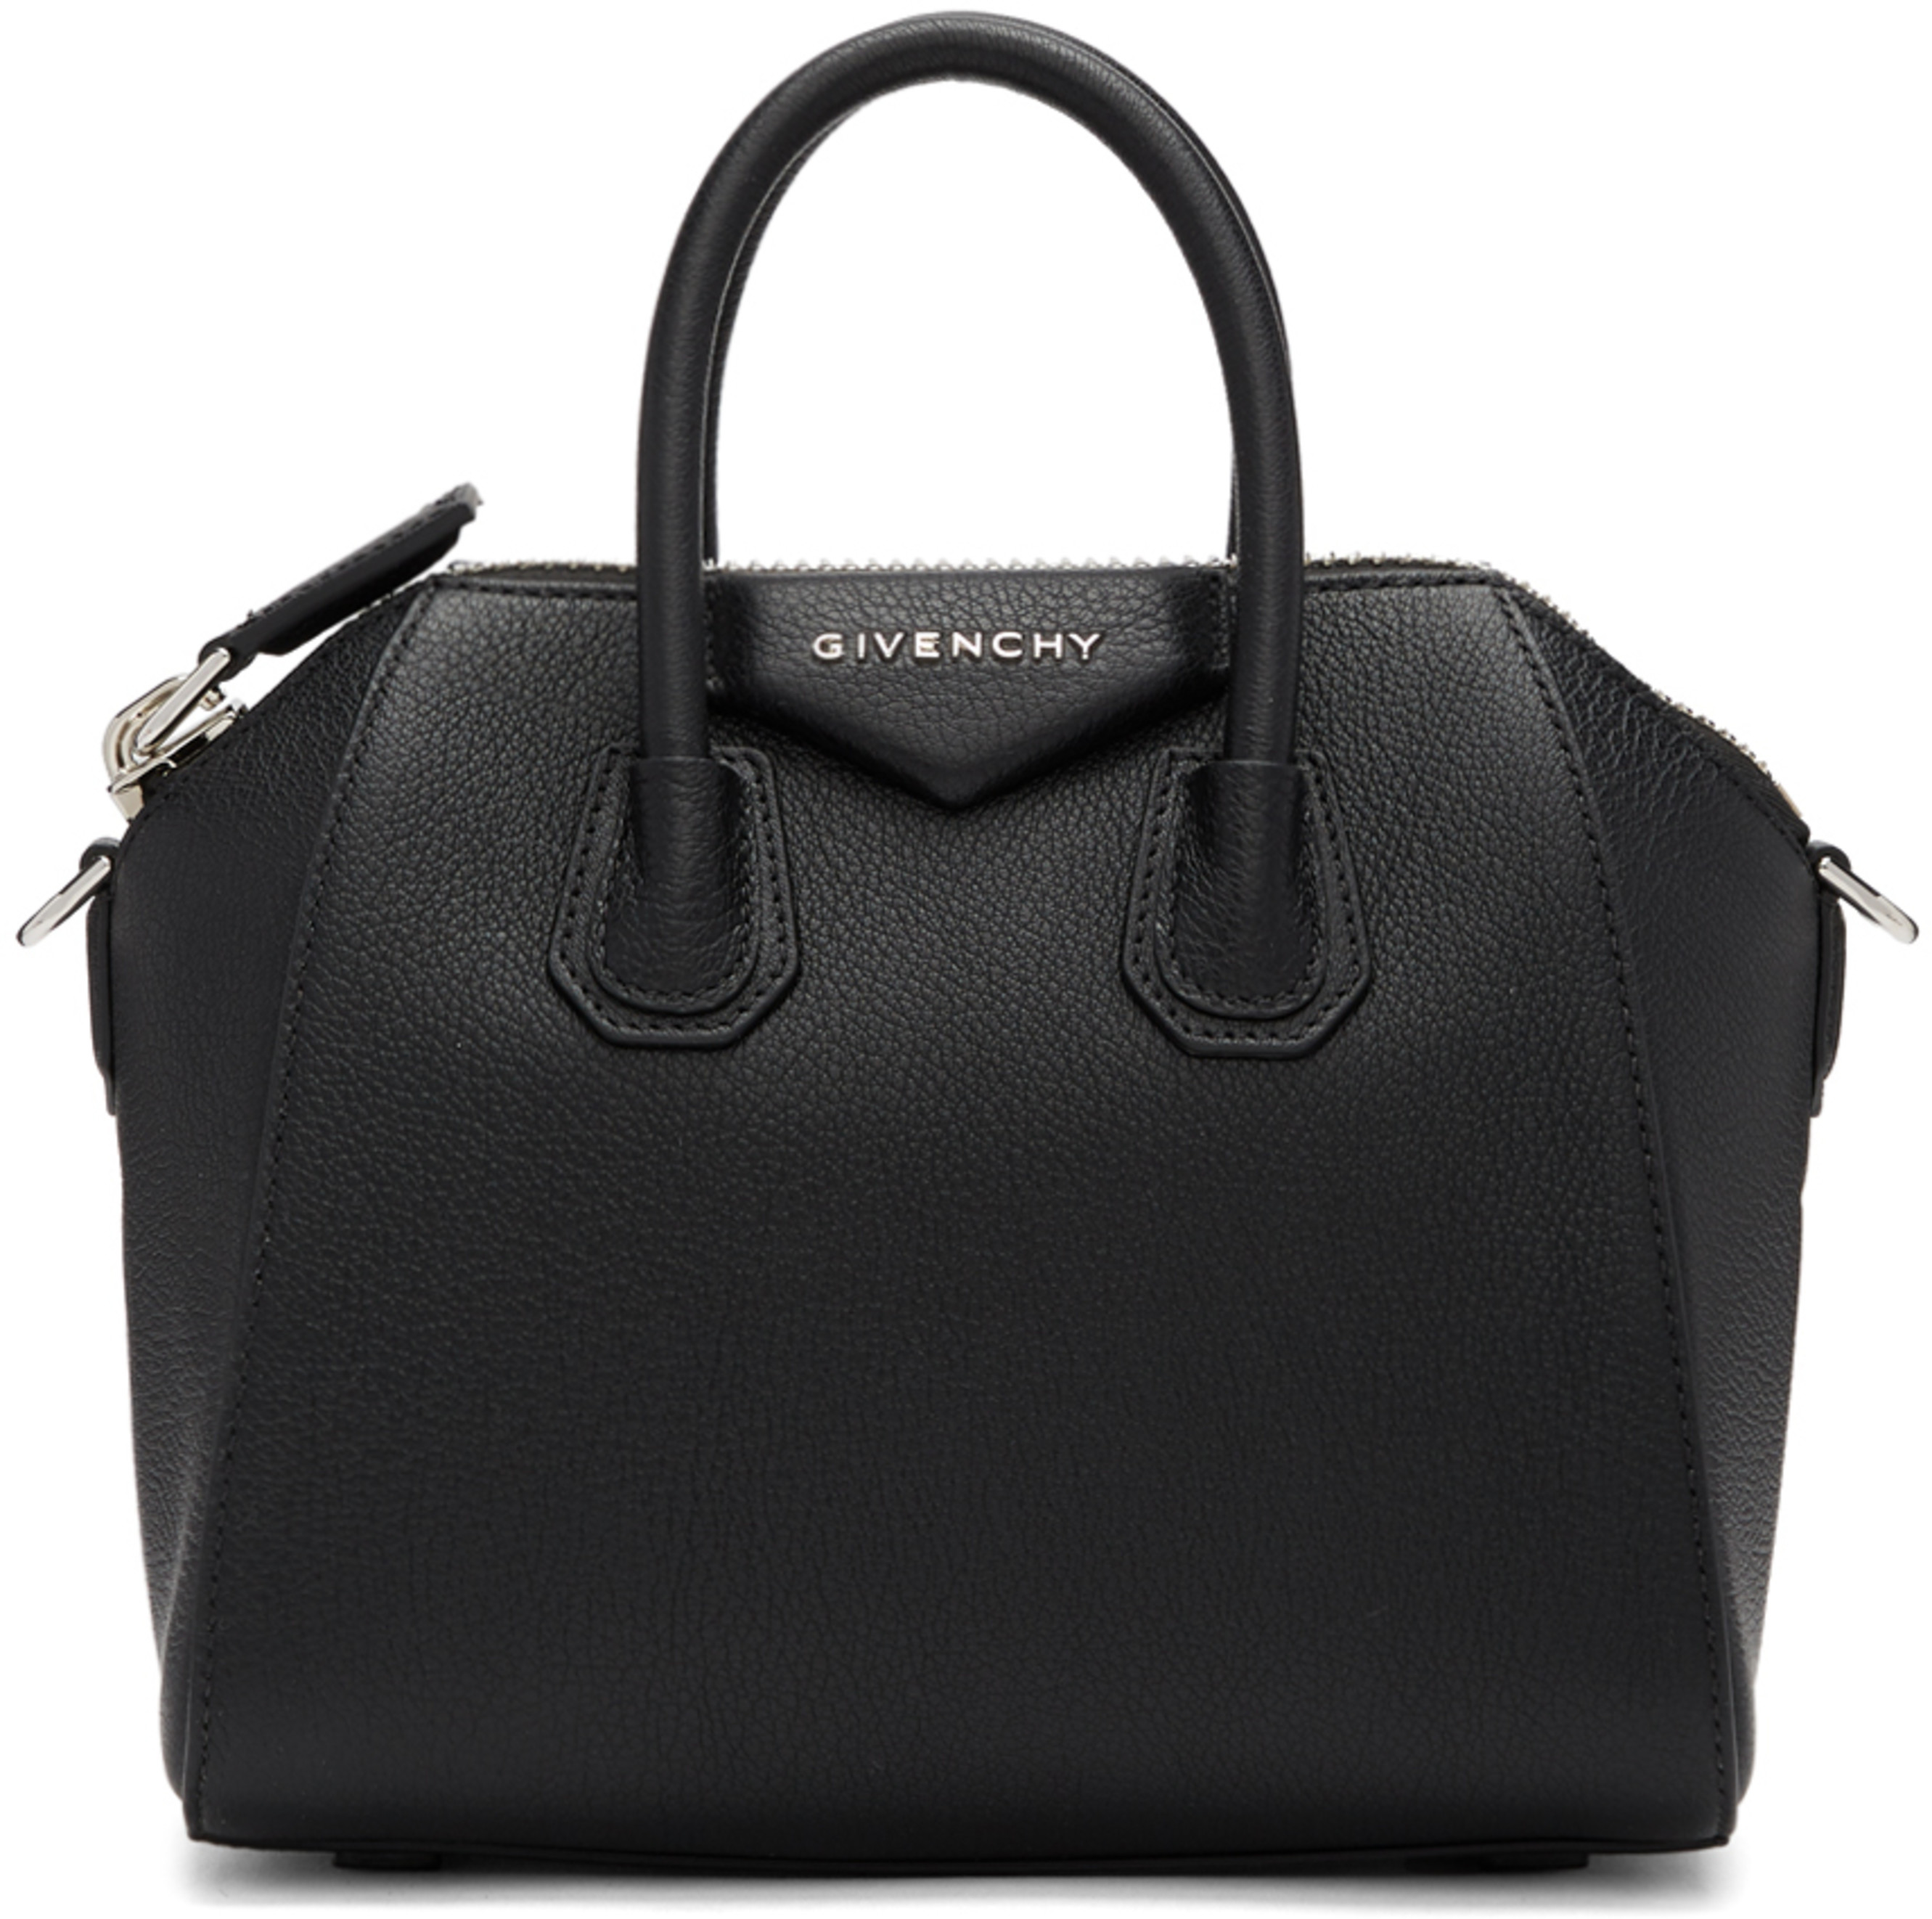 bfe442dcd120 Givenchy bags for Women